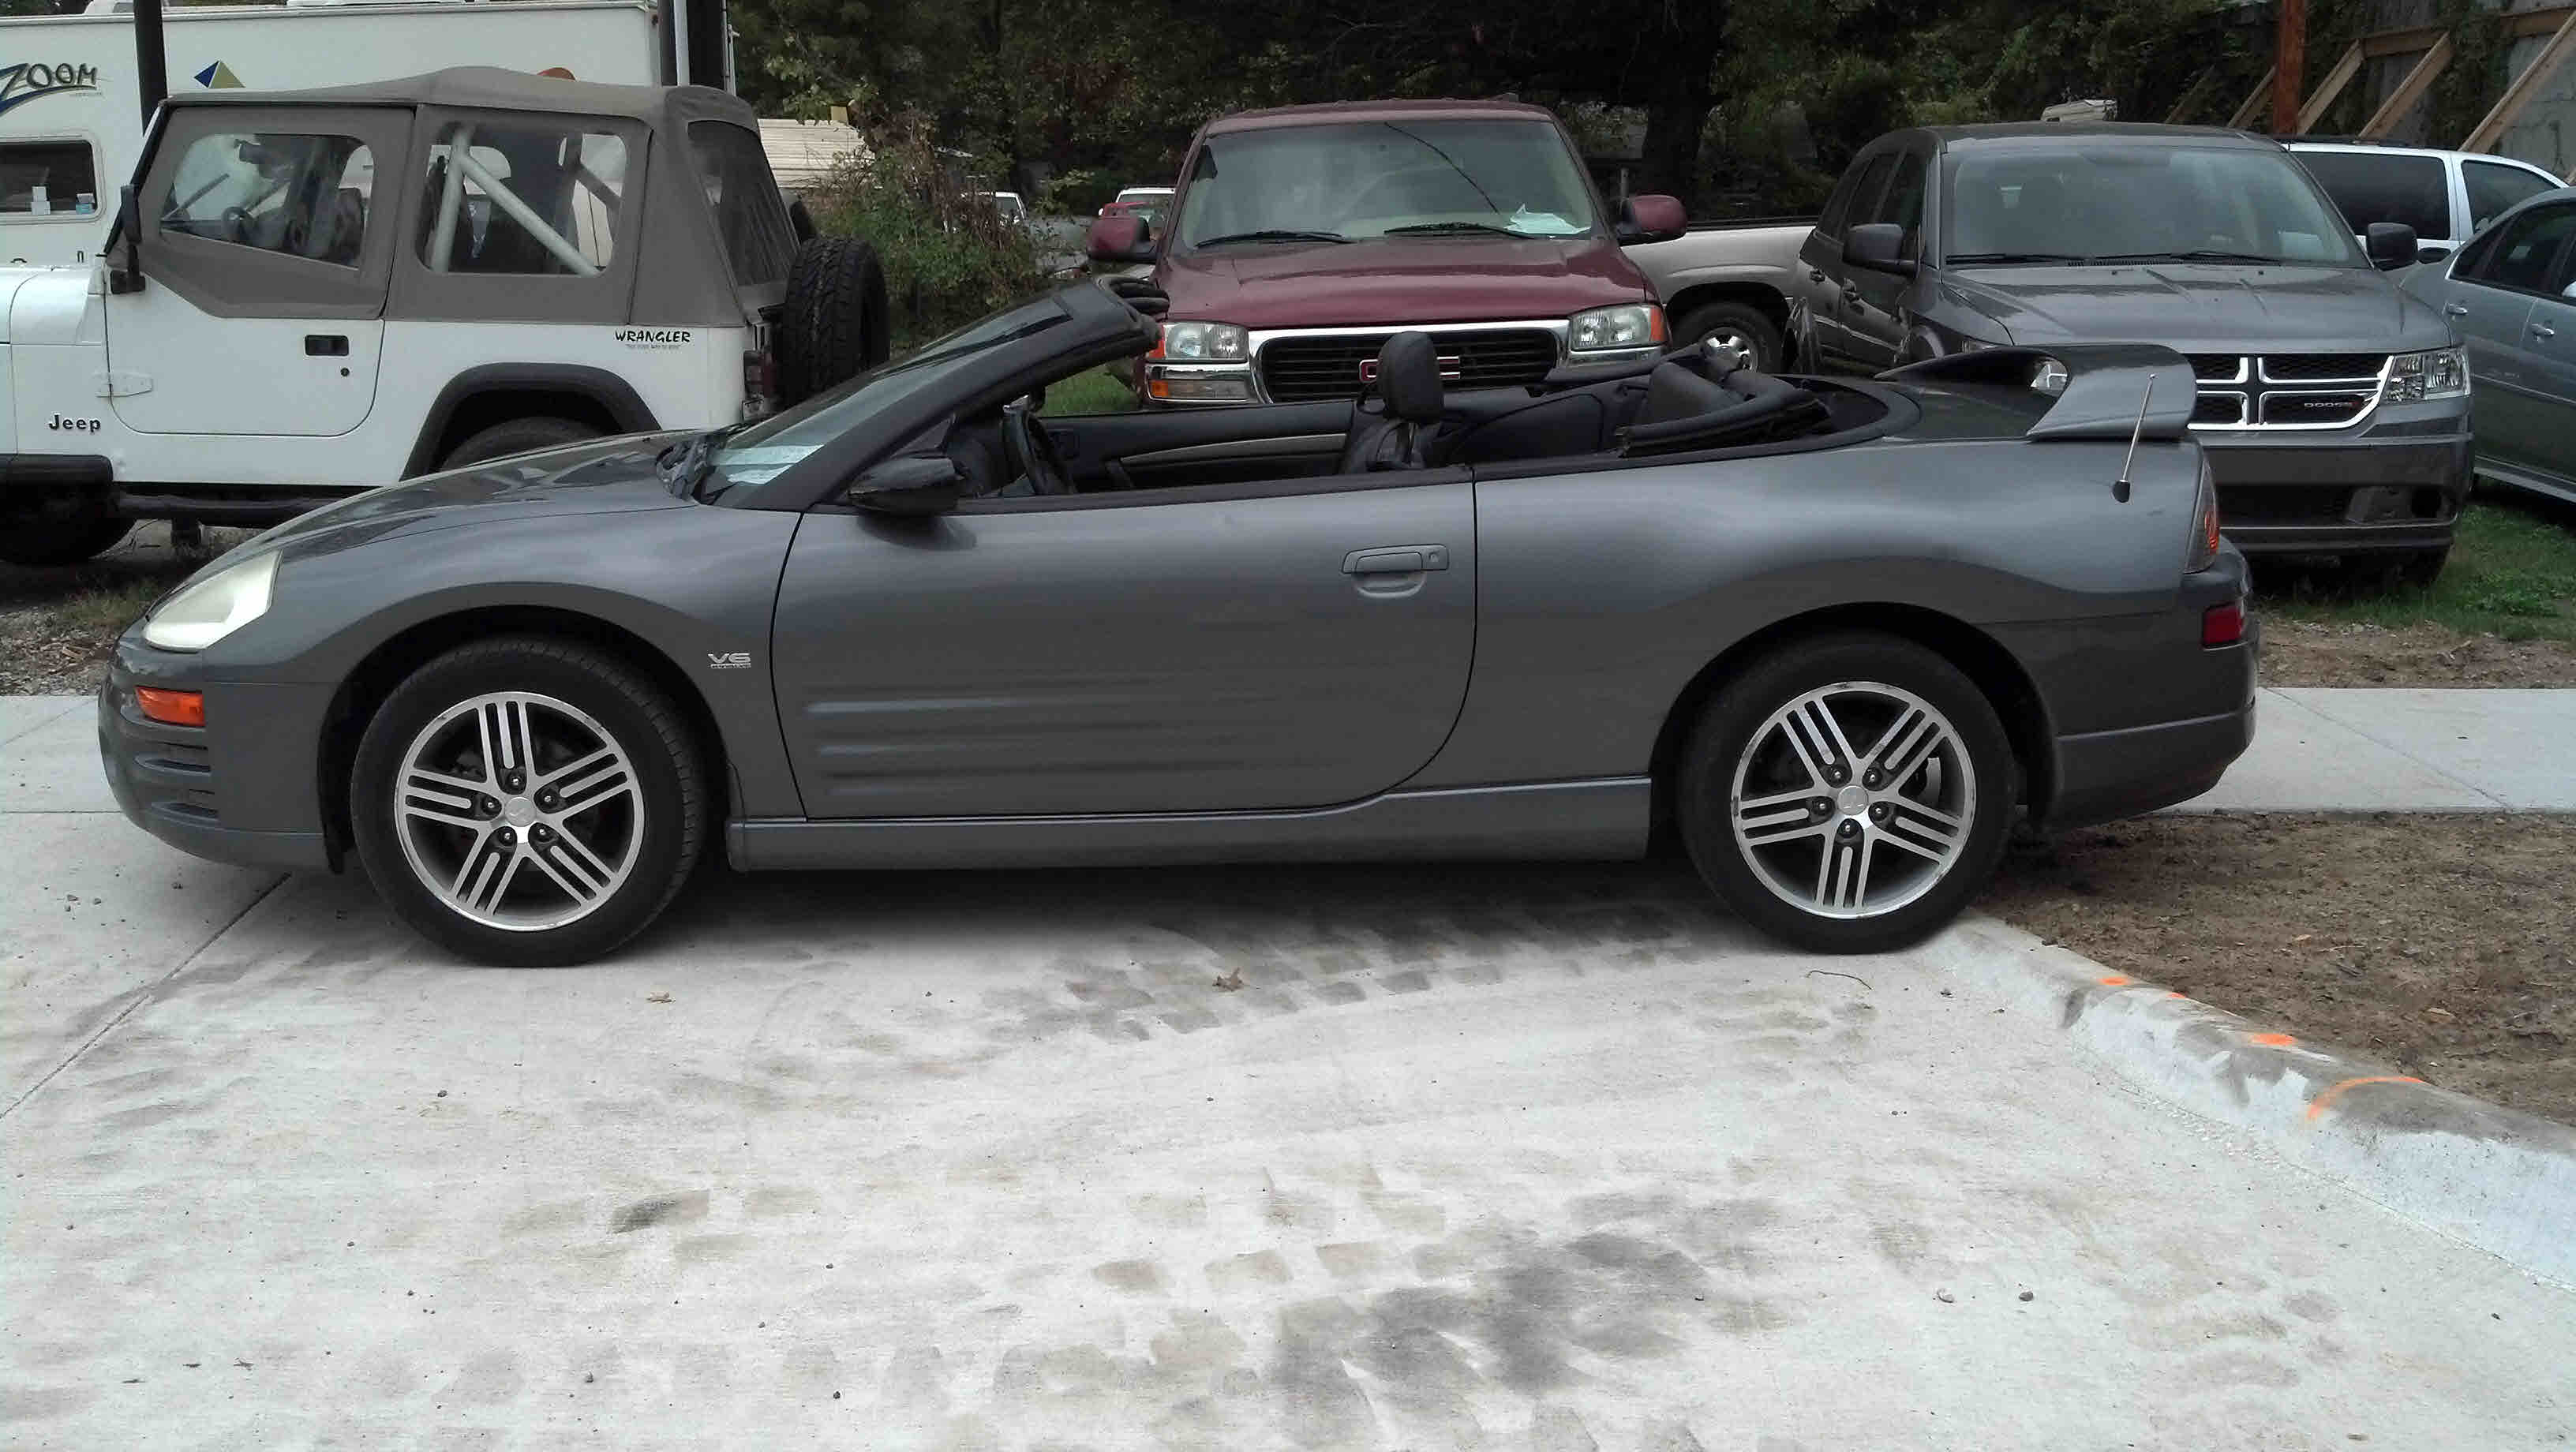 2 Door Convertible >> Silver, dark grey leather interior, V-6 3.0 liter, 5 speed, front-wheel drive, 2 door, keyless ...